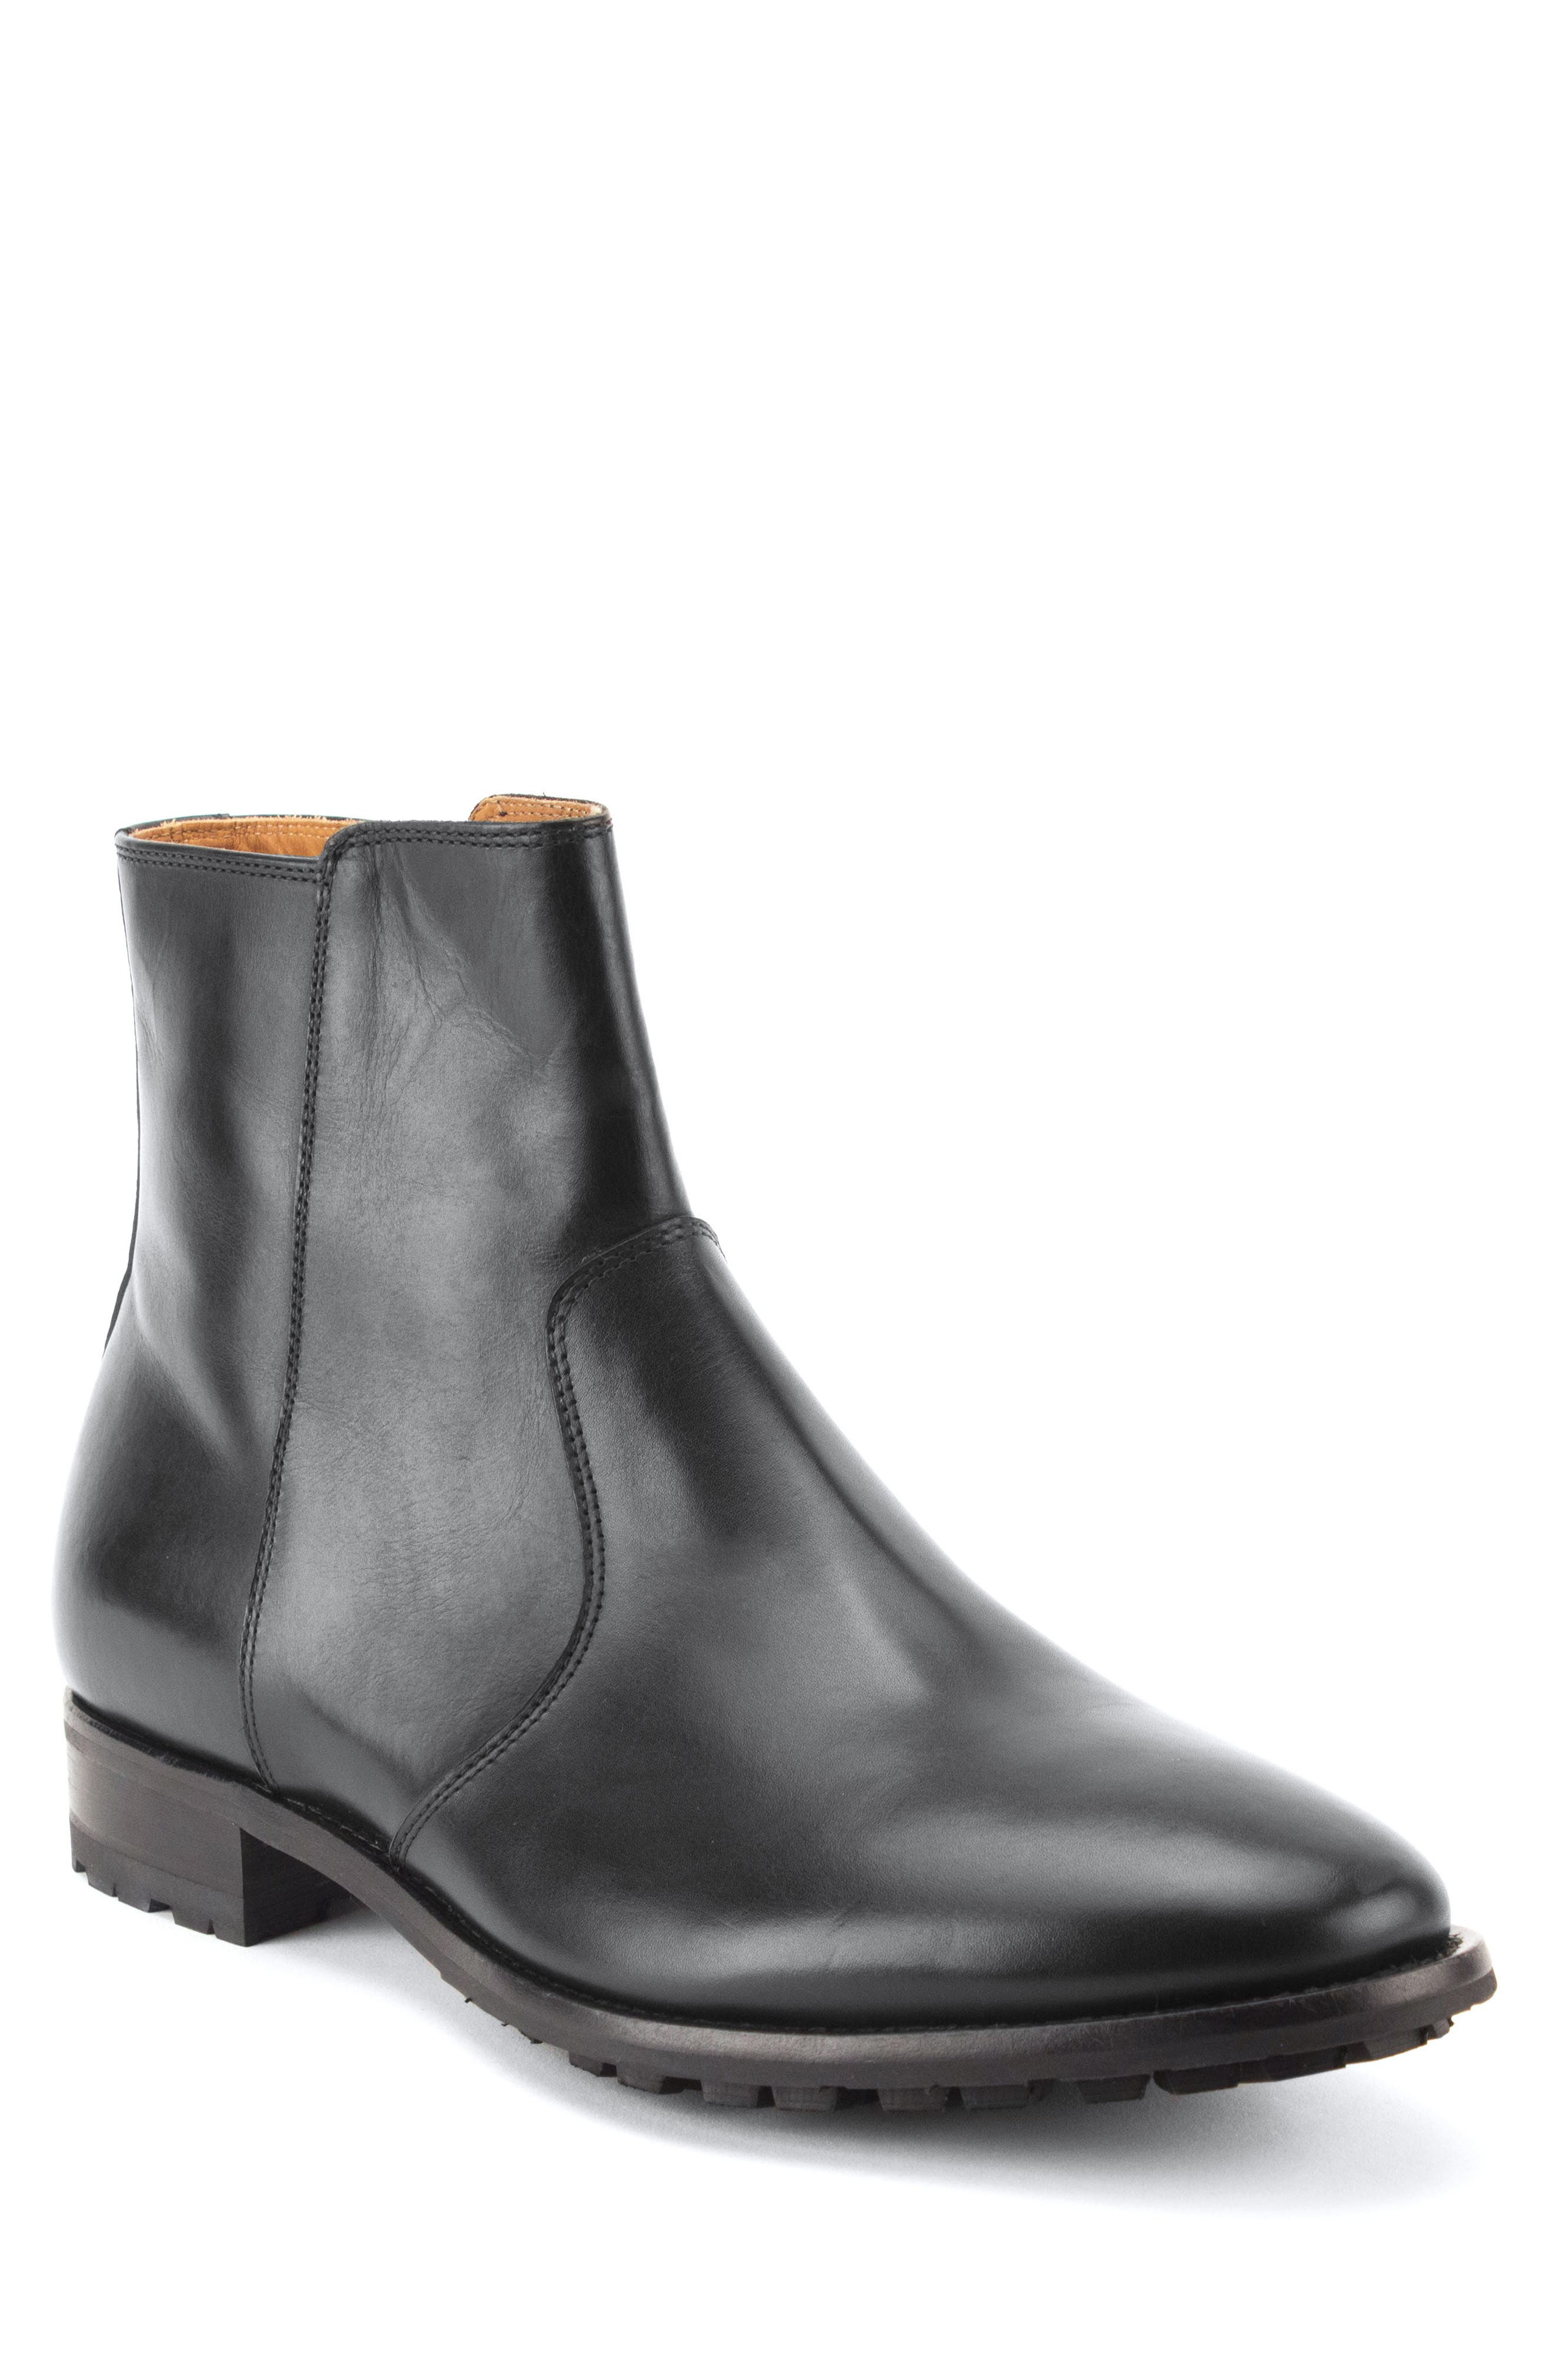 Roberts Zip Boot,                         Main,                         color, BLACK LEATHER